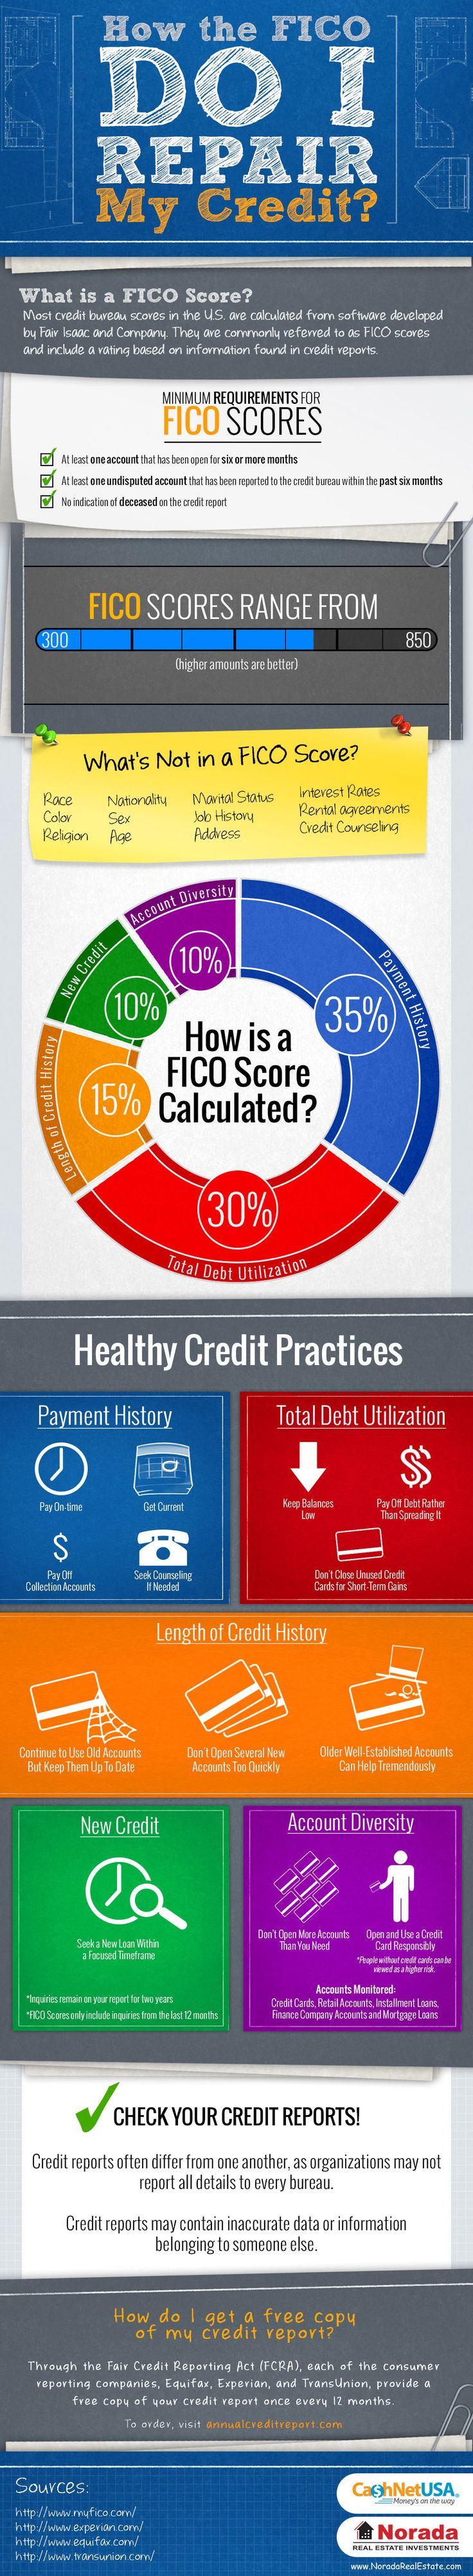 How the FICO Do I Repair My Credit?